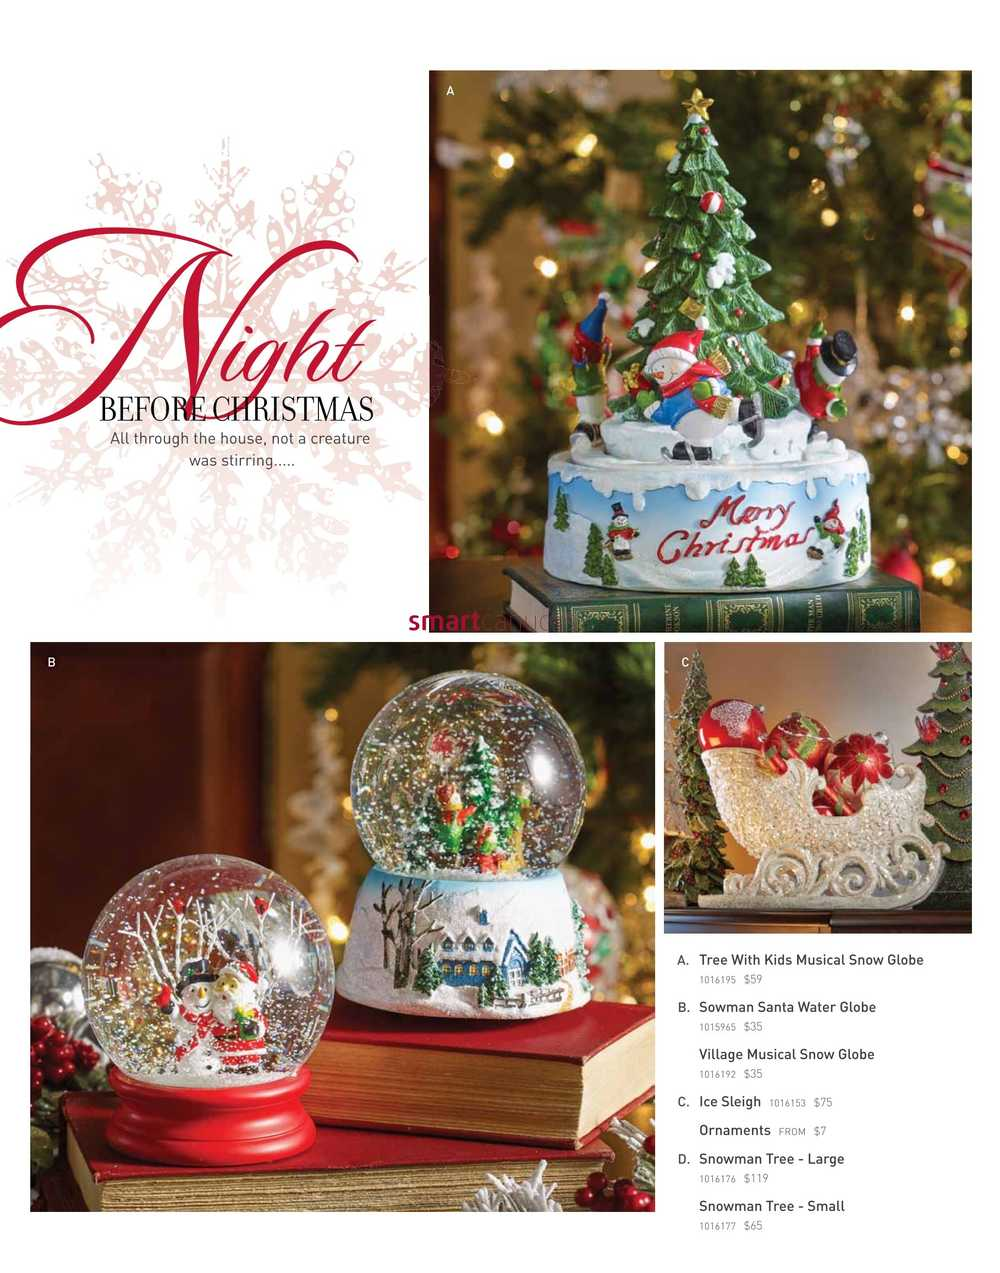 Bombay holiday decor book october 24 to december 24 for Home bargains christmas decorations